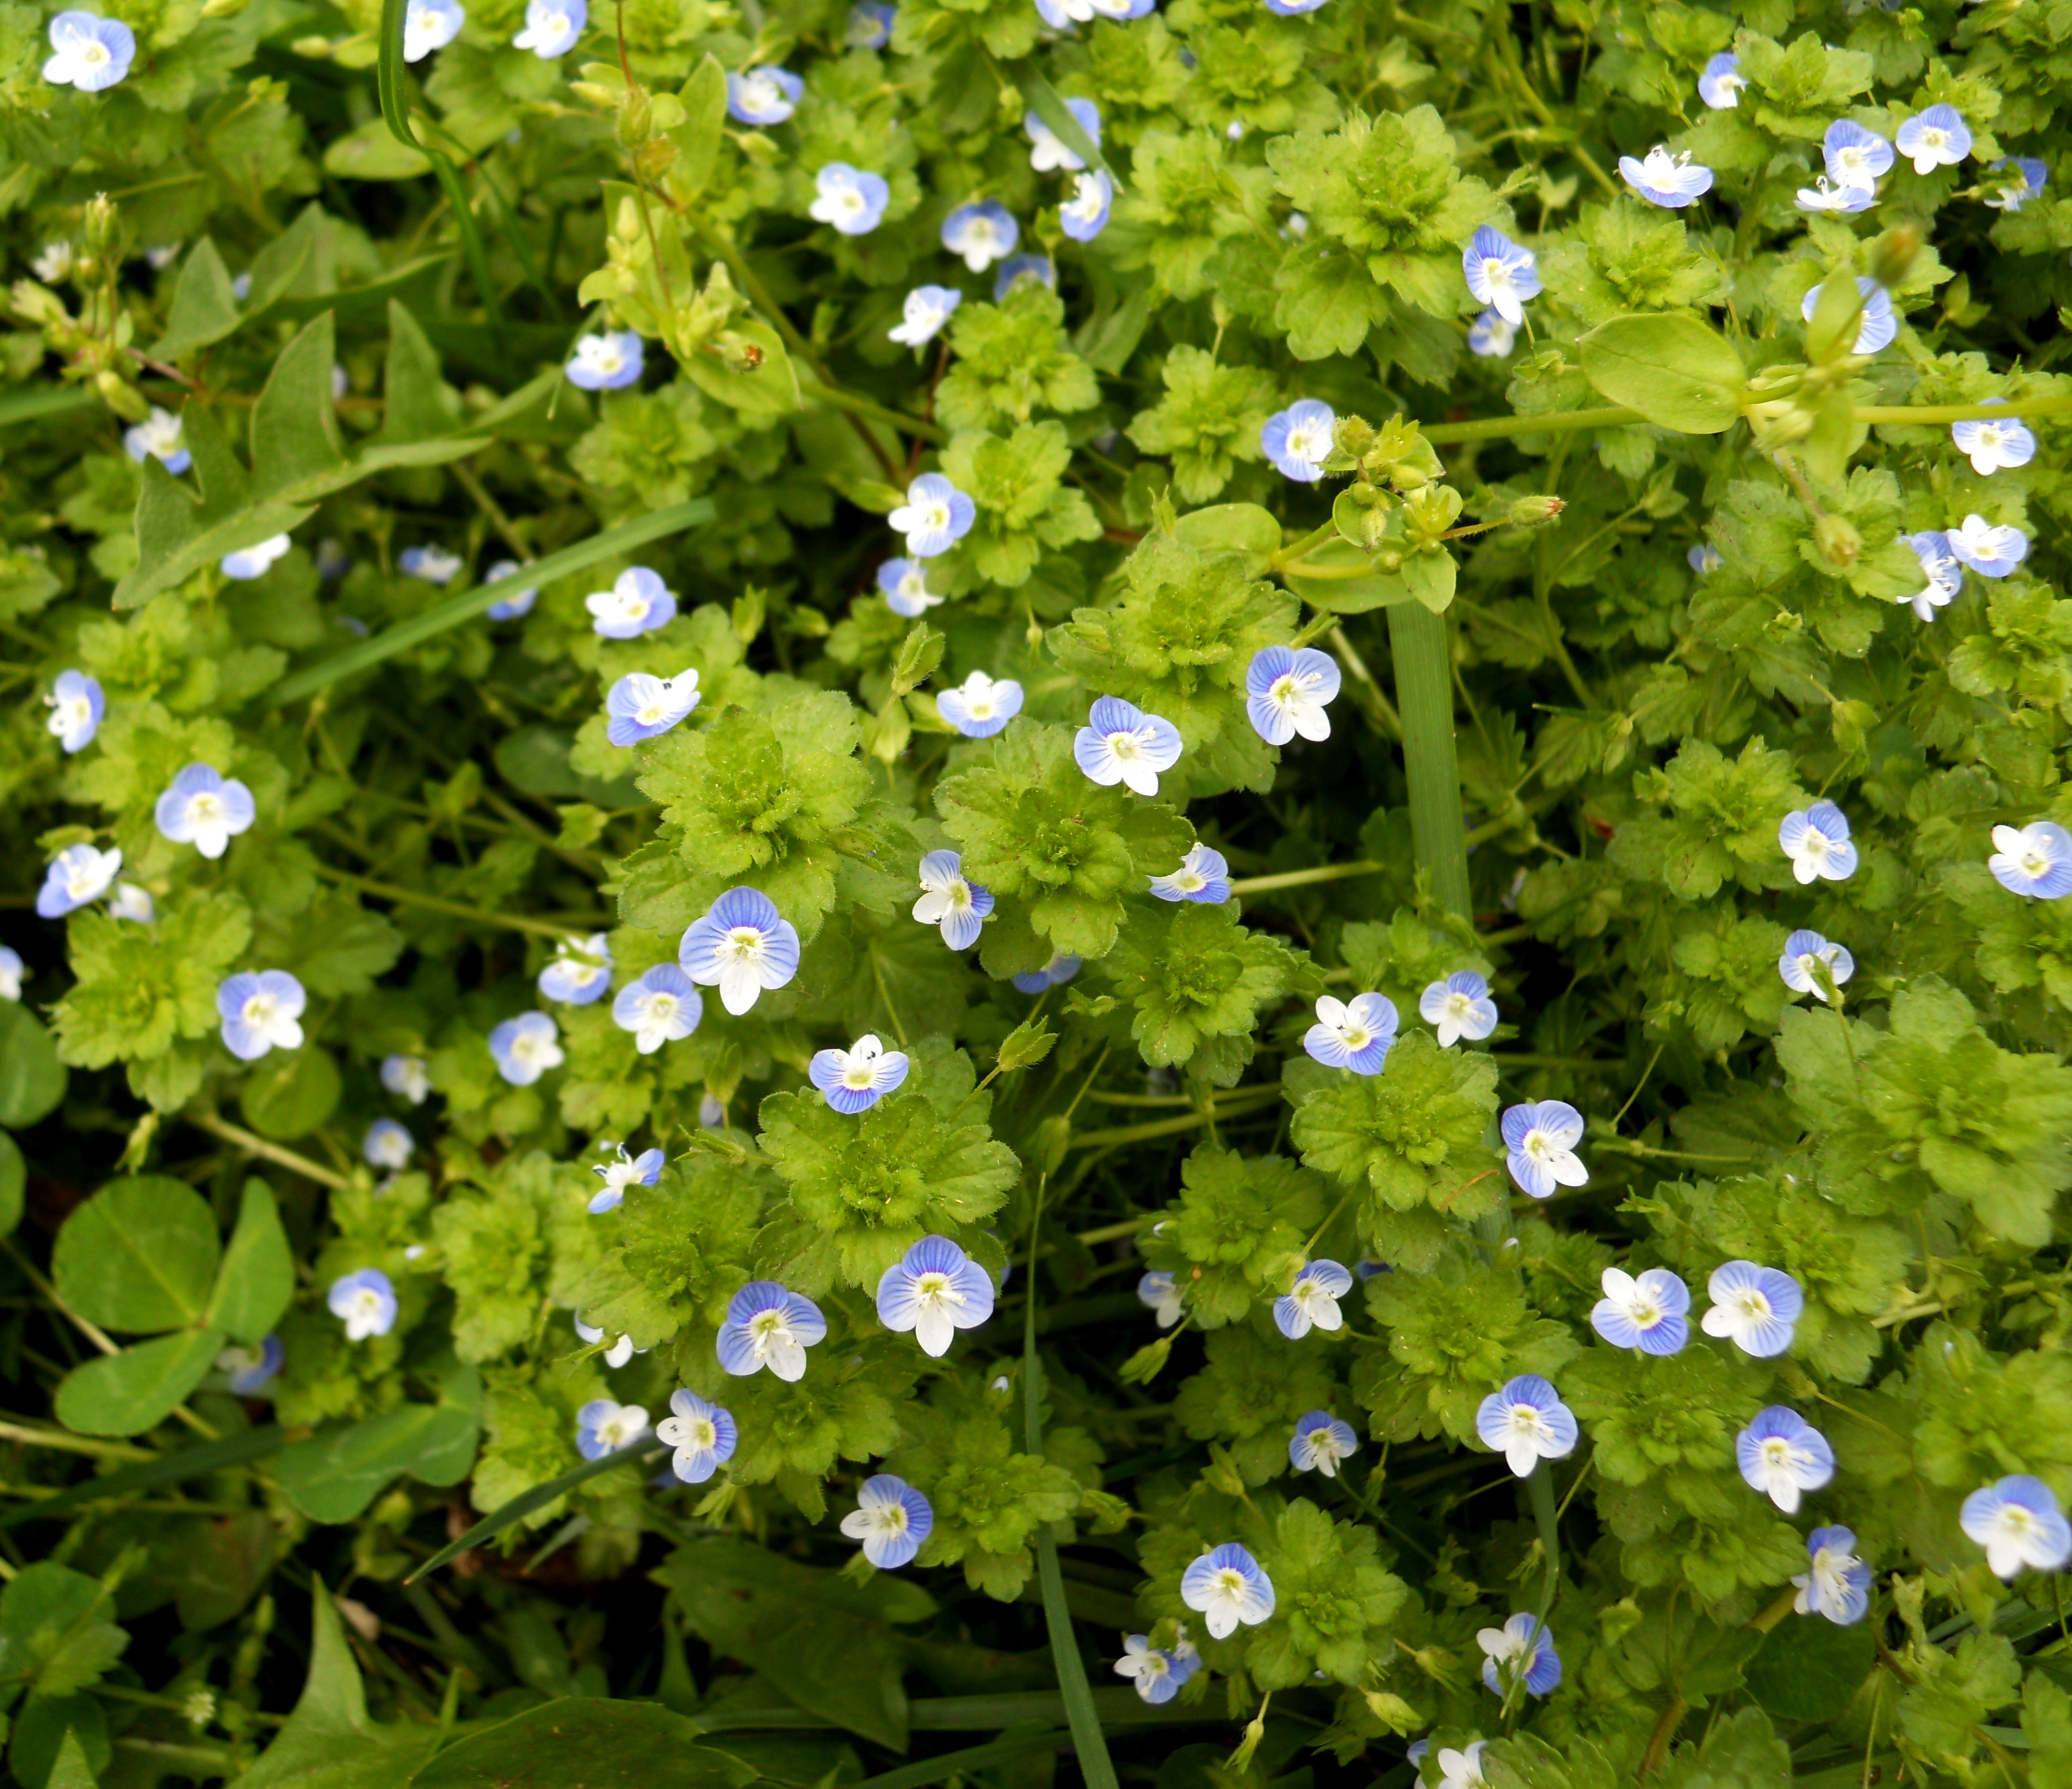 News events genesis turfgrass corn speedwell is a winter annual ie emerges from seed in the autumn and dies in summer and has flowers and leaves similar to slender speedwell mightylinksfo